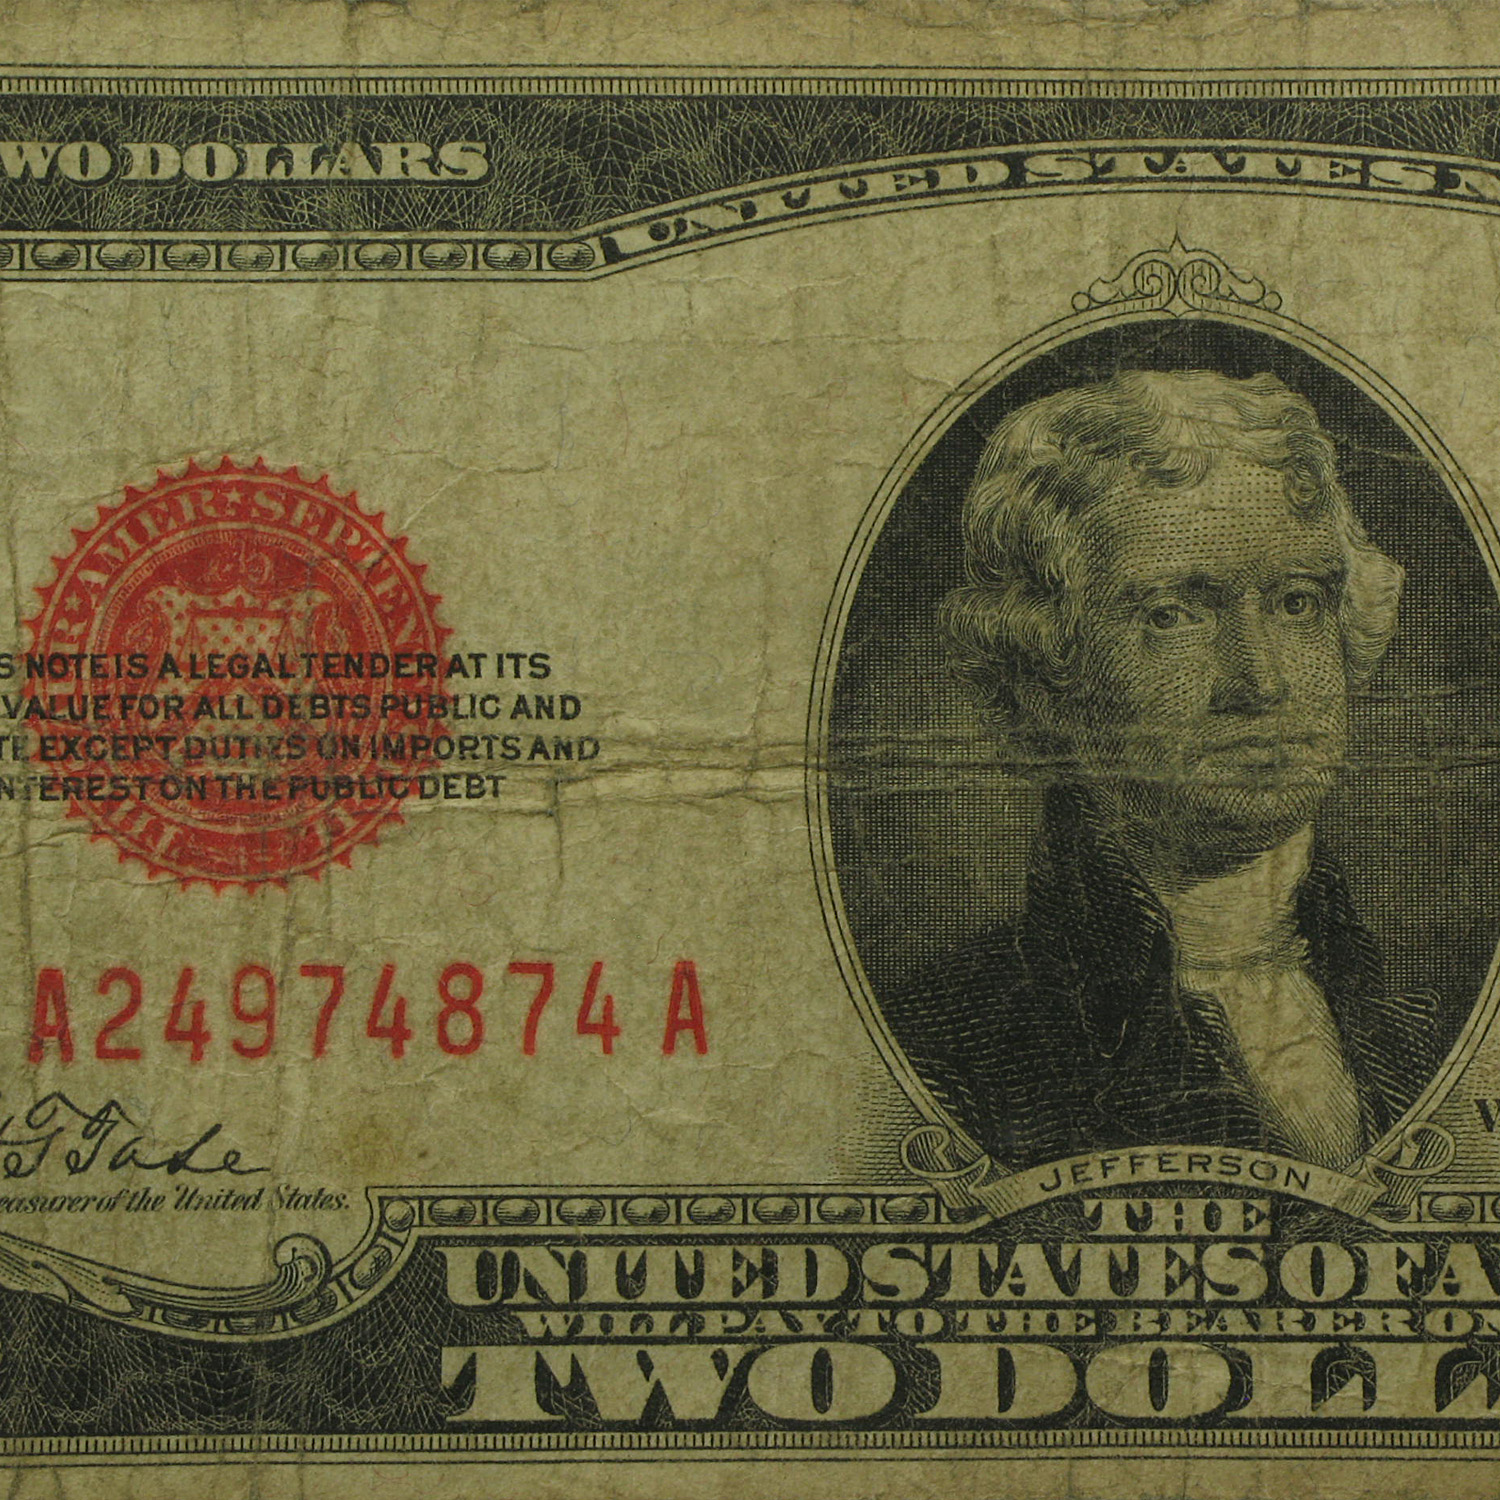 1928 $2.00 USN (Red Seal) (Very Good)